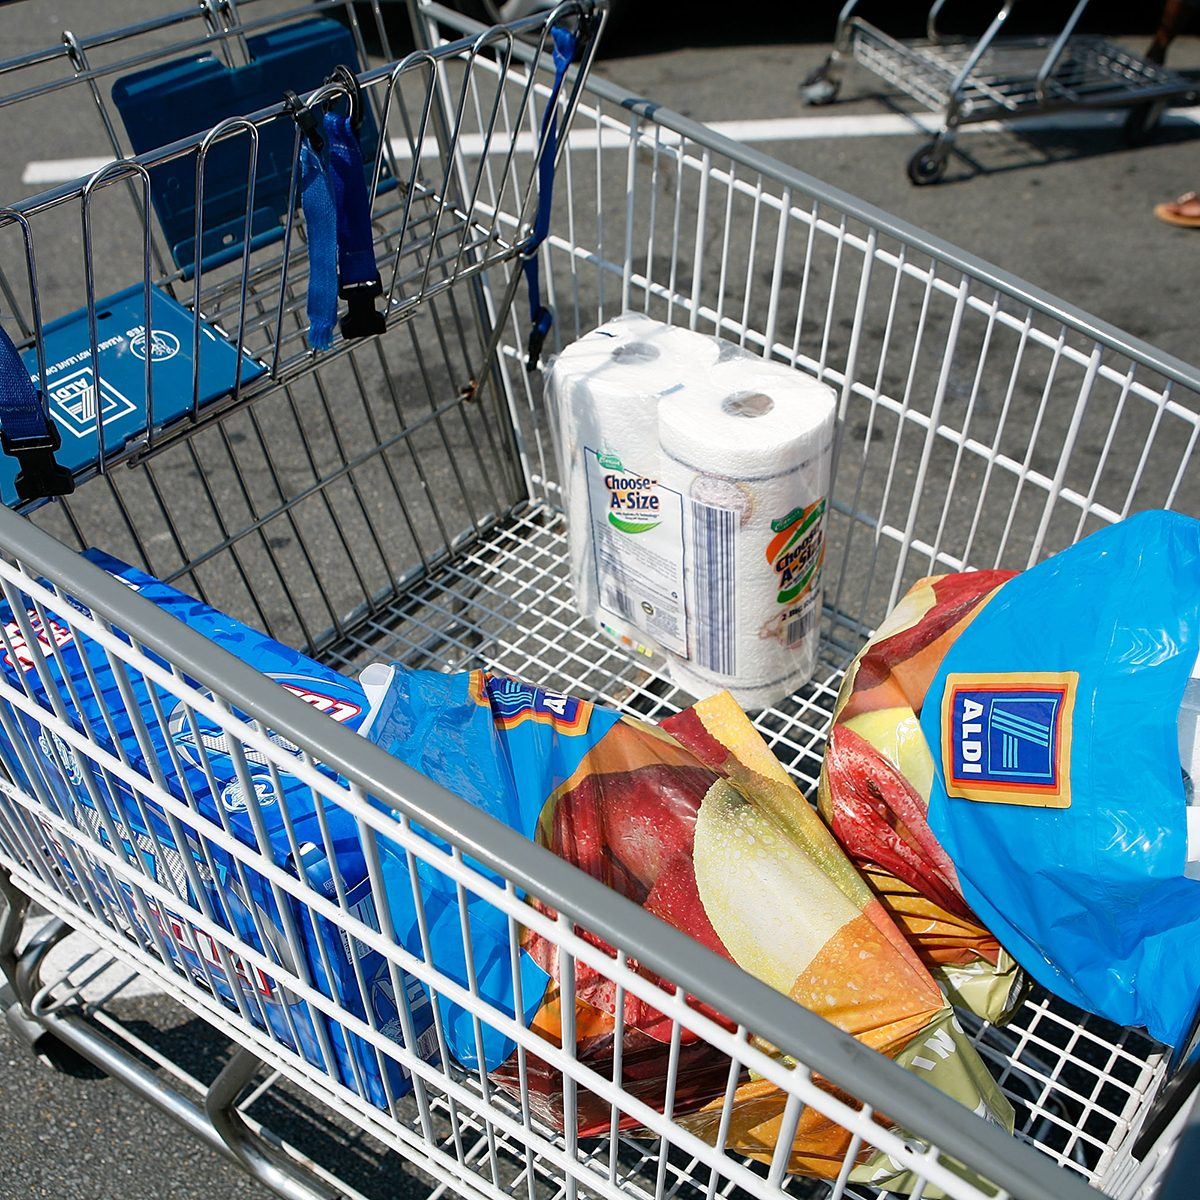 ALEXANDRIA, VA - AUGUST 24: Groceries which were purchased from an Aldi store are seen in a shopping cart August 24, 2009 in Alexandria, Virginia. The German discount grocery chain, which launched 100 new stores in 2008 alone, recently opened its 1000th store in the U.S. Its no-frills approach has led to increased profits as U.S. consumers continue to struggle during the recession. (Photo by Alex Wong/Getty Images)